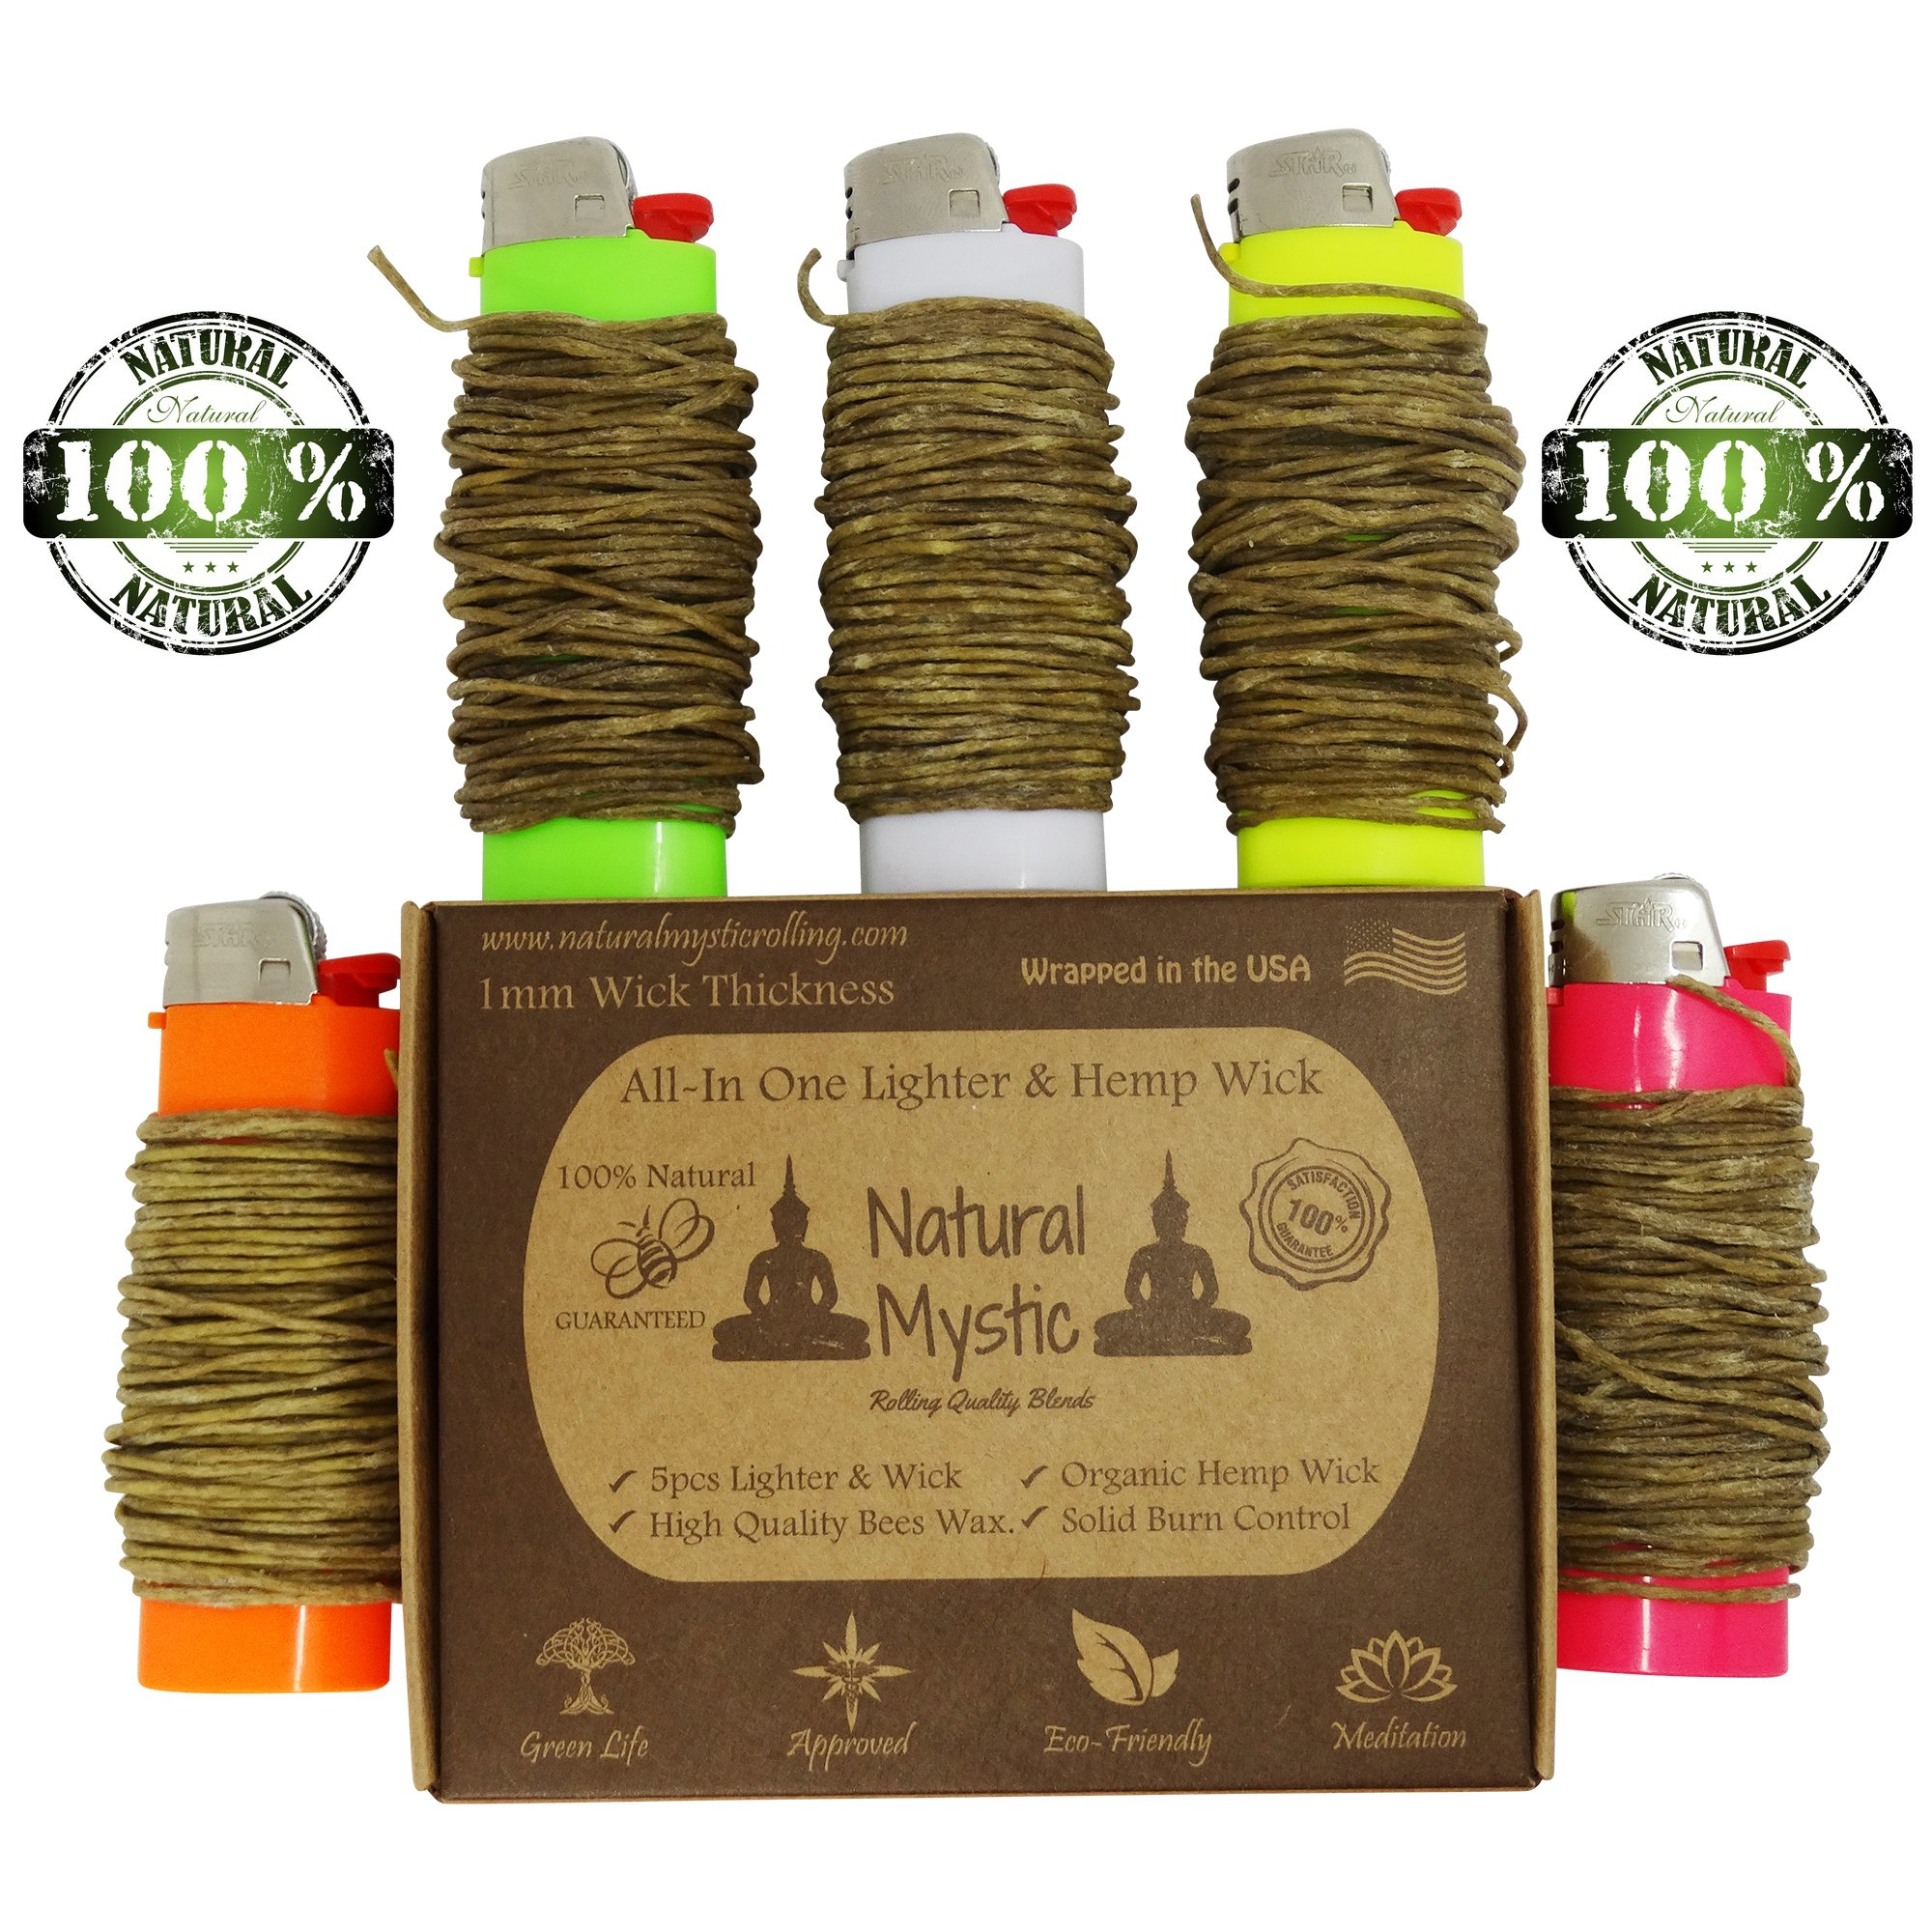 Hemp Wick Dispenser Lighter - Poker Tool - Stiff Beeswax Perfect Flame Placement Tightly Wrapped 5 High Quality Lighters 20ft Each Total 100ft Natural Mystic Pocket Size Convenient